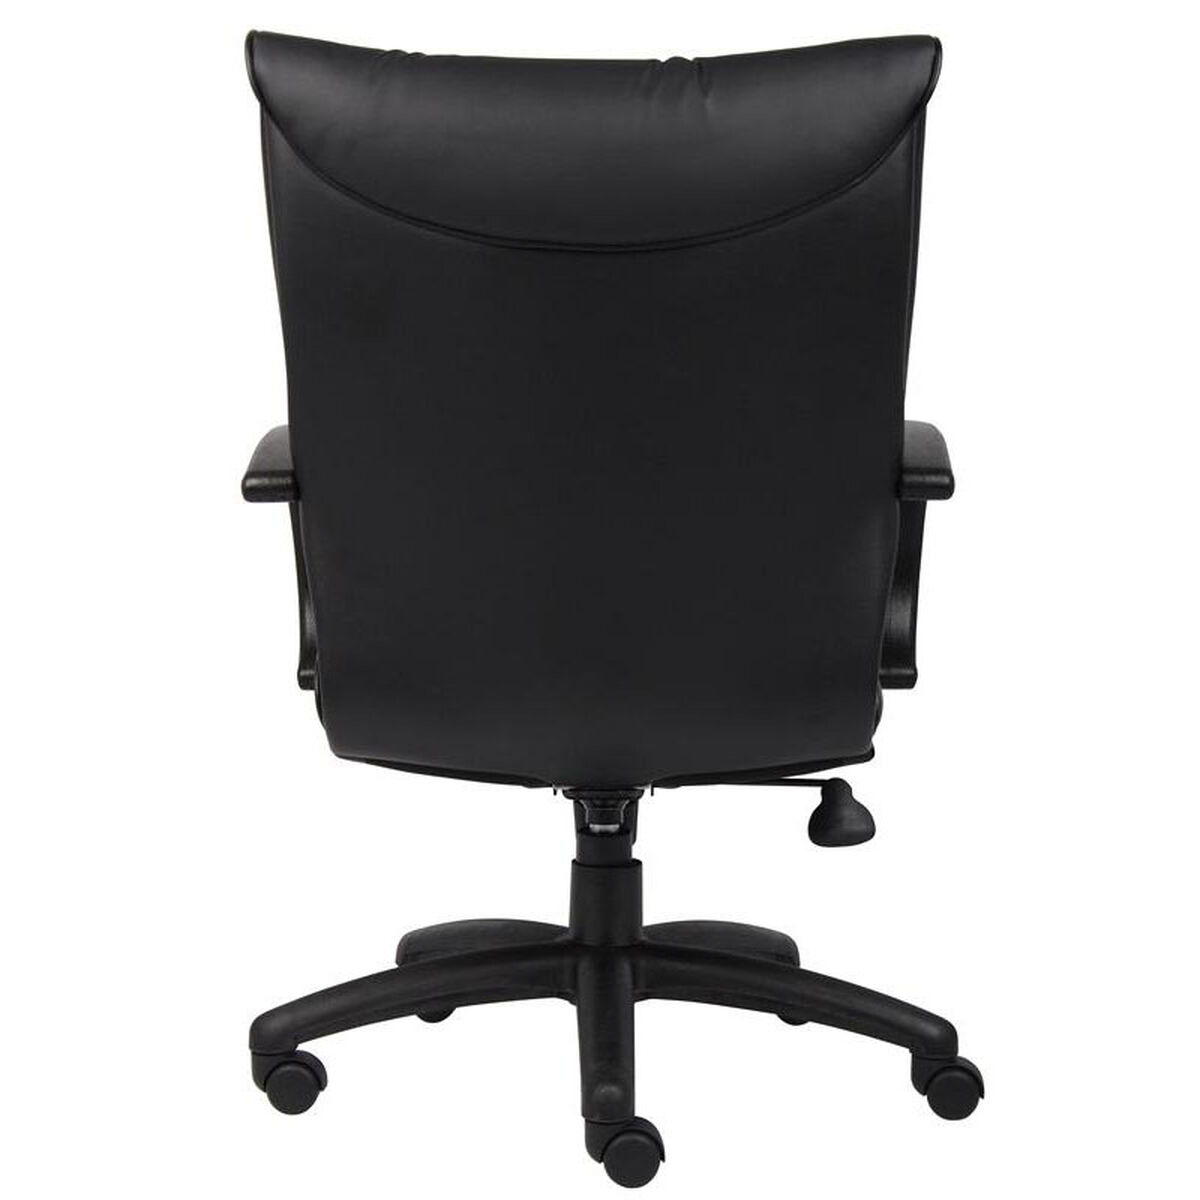 Our Mid Back Leatherplus Executive Chair With Padded Chrome Armrests Black Is On Now